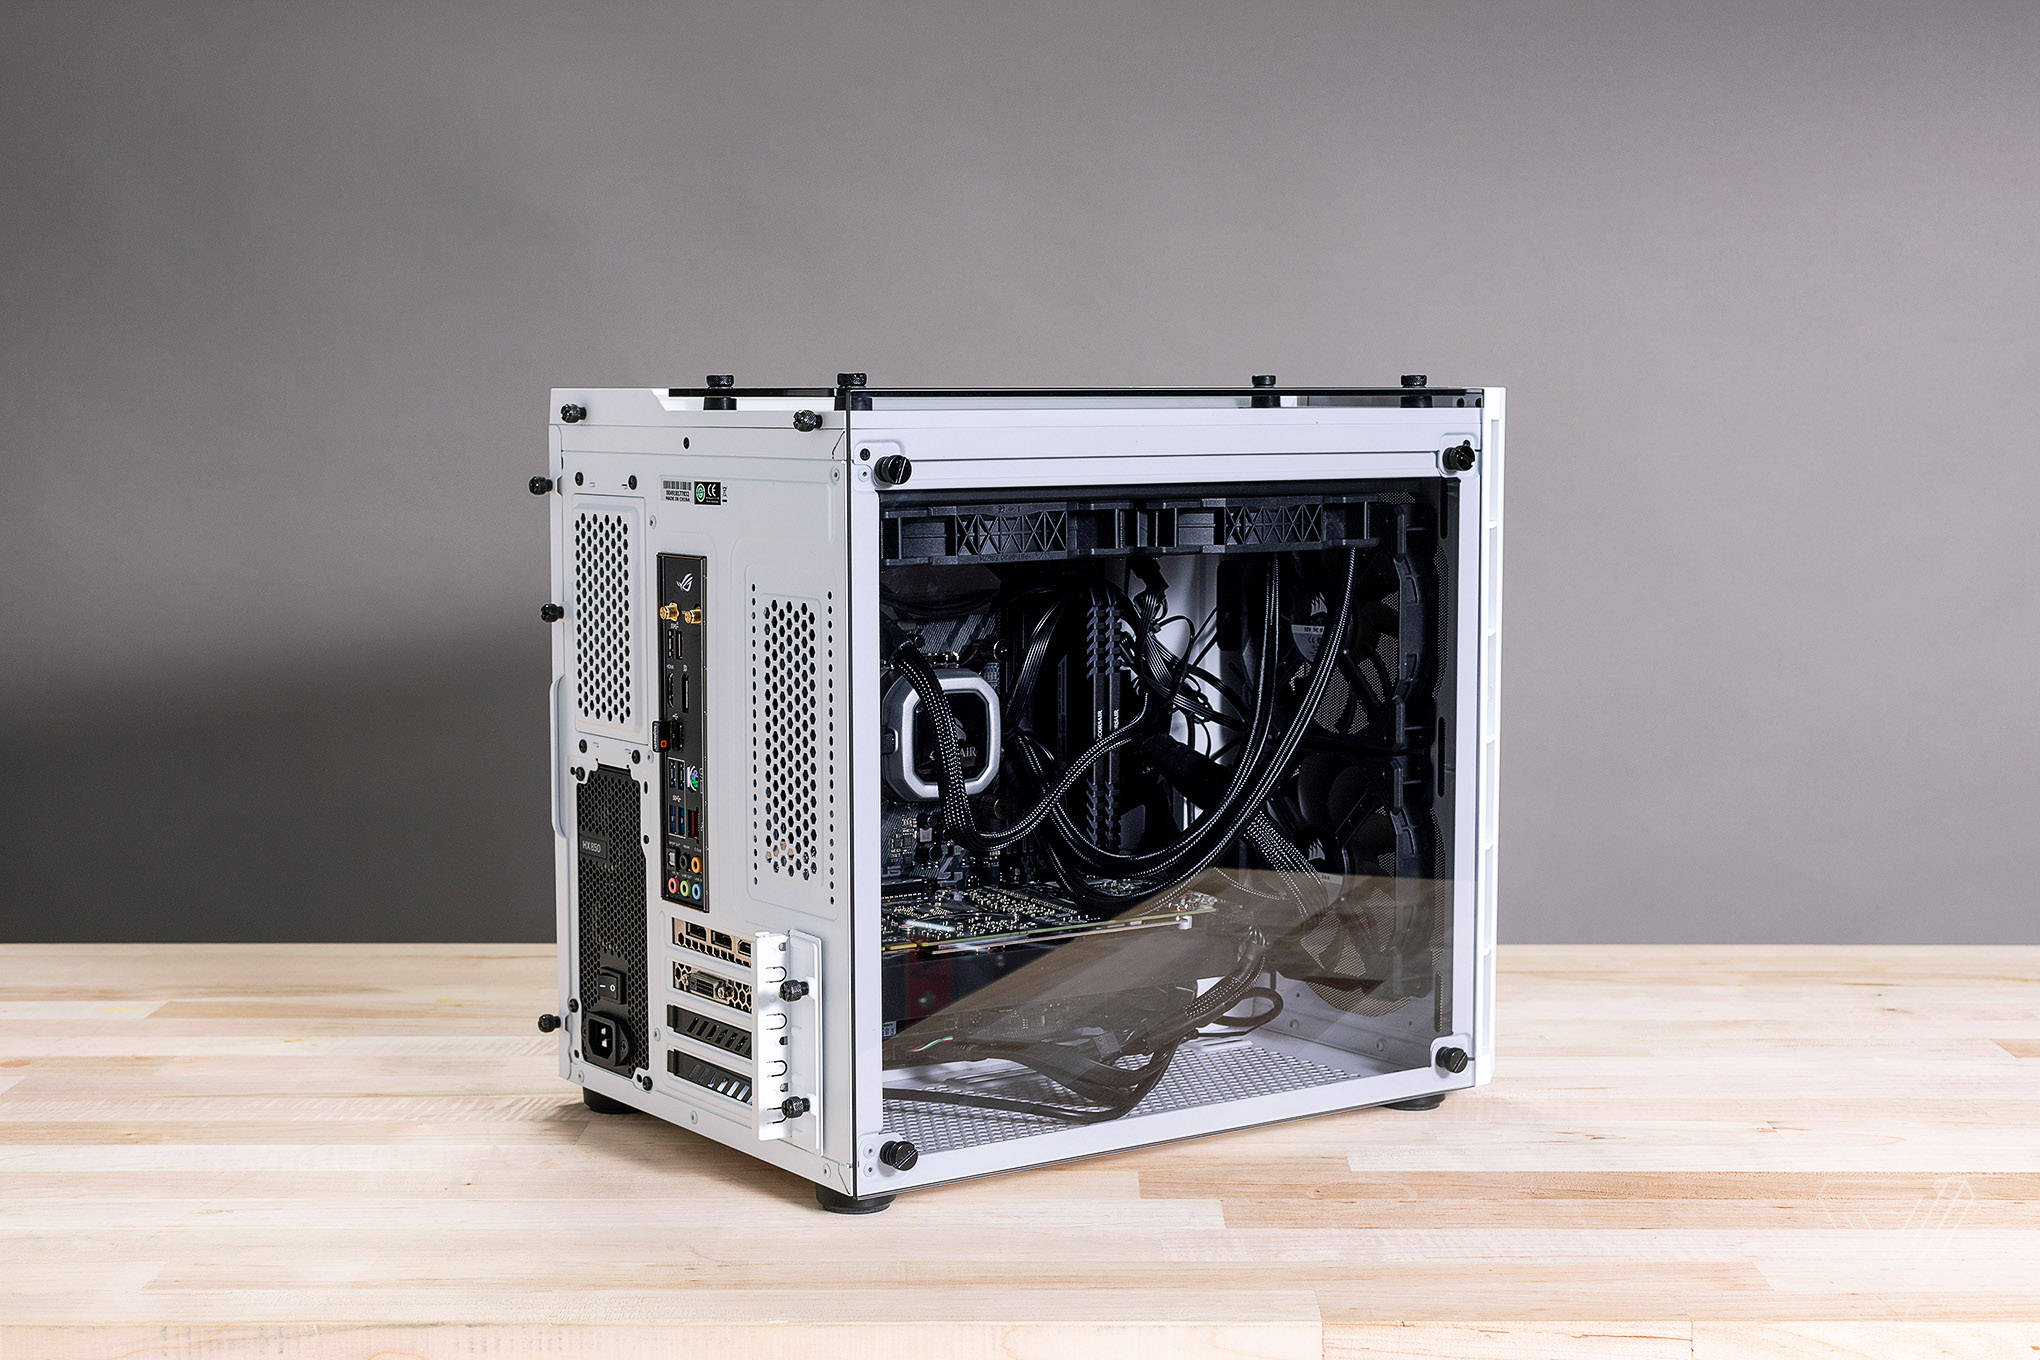 How To Build A Custom Pc For Gaming Editing Or Coding The Verge Diagram Of Computer Components Mouse Monitor Cpu Etc Photo By Amelia Holowaty Krales